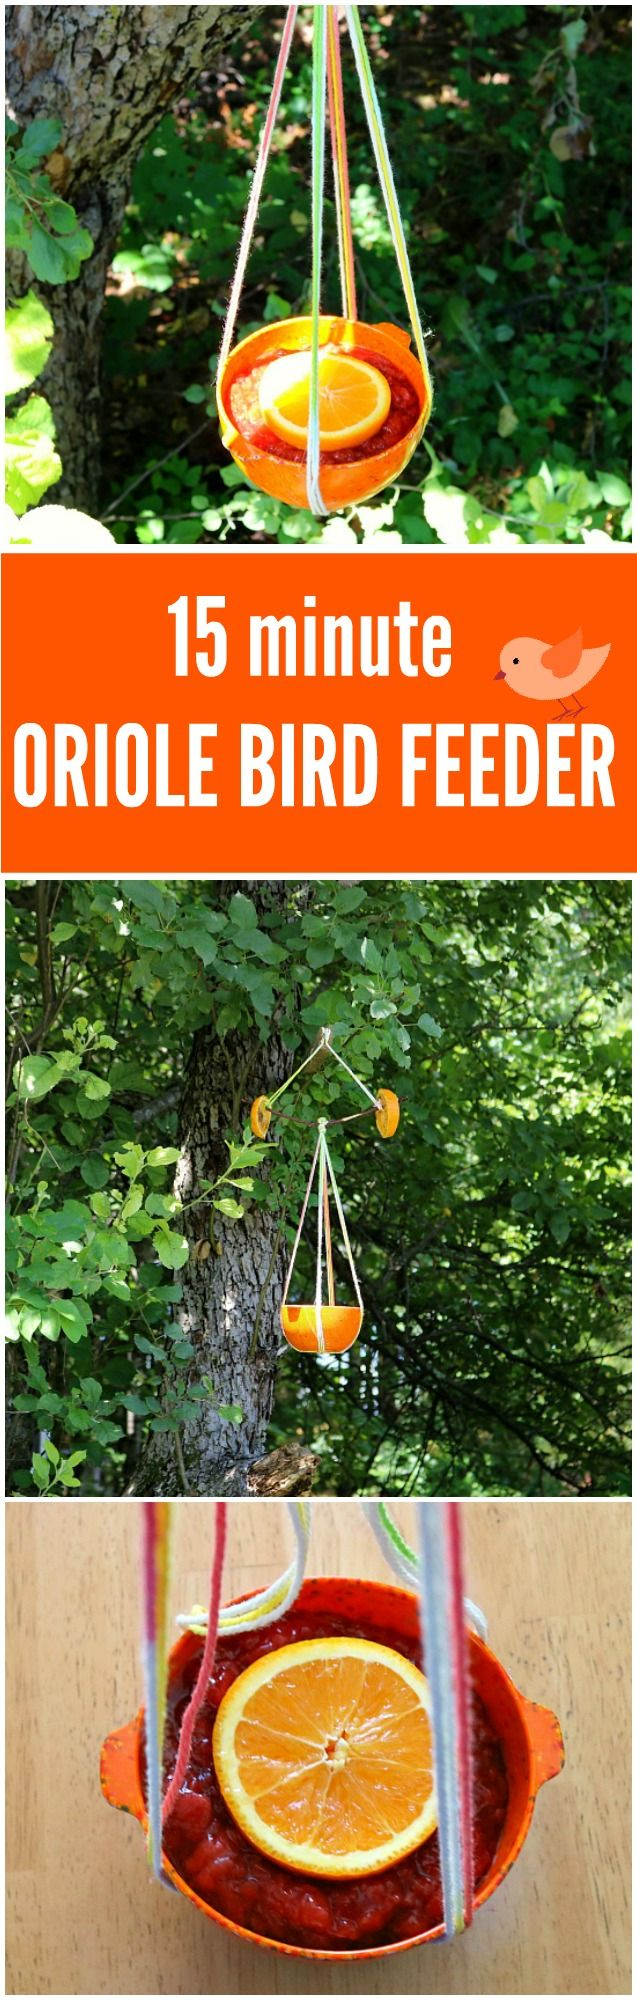 This Super Simple DIY Oriole Bird Feeder takes only about 15 minutes to make and is sure to attract all kinds of Orioles and pretty songbirds to your yard!